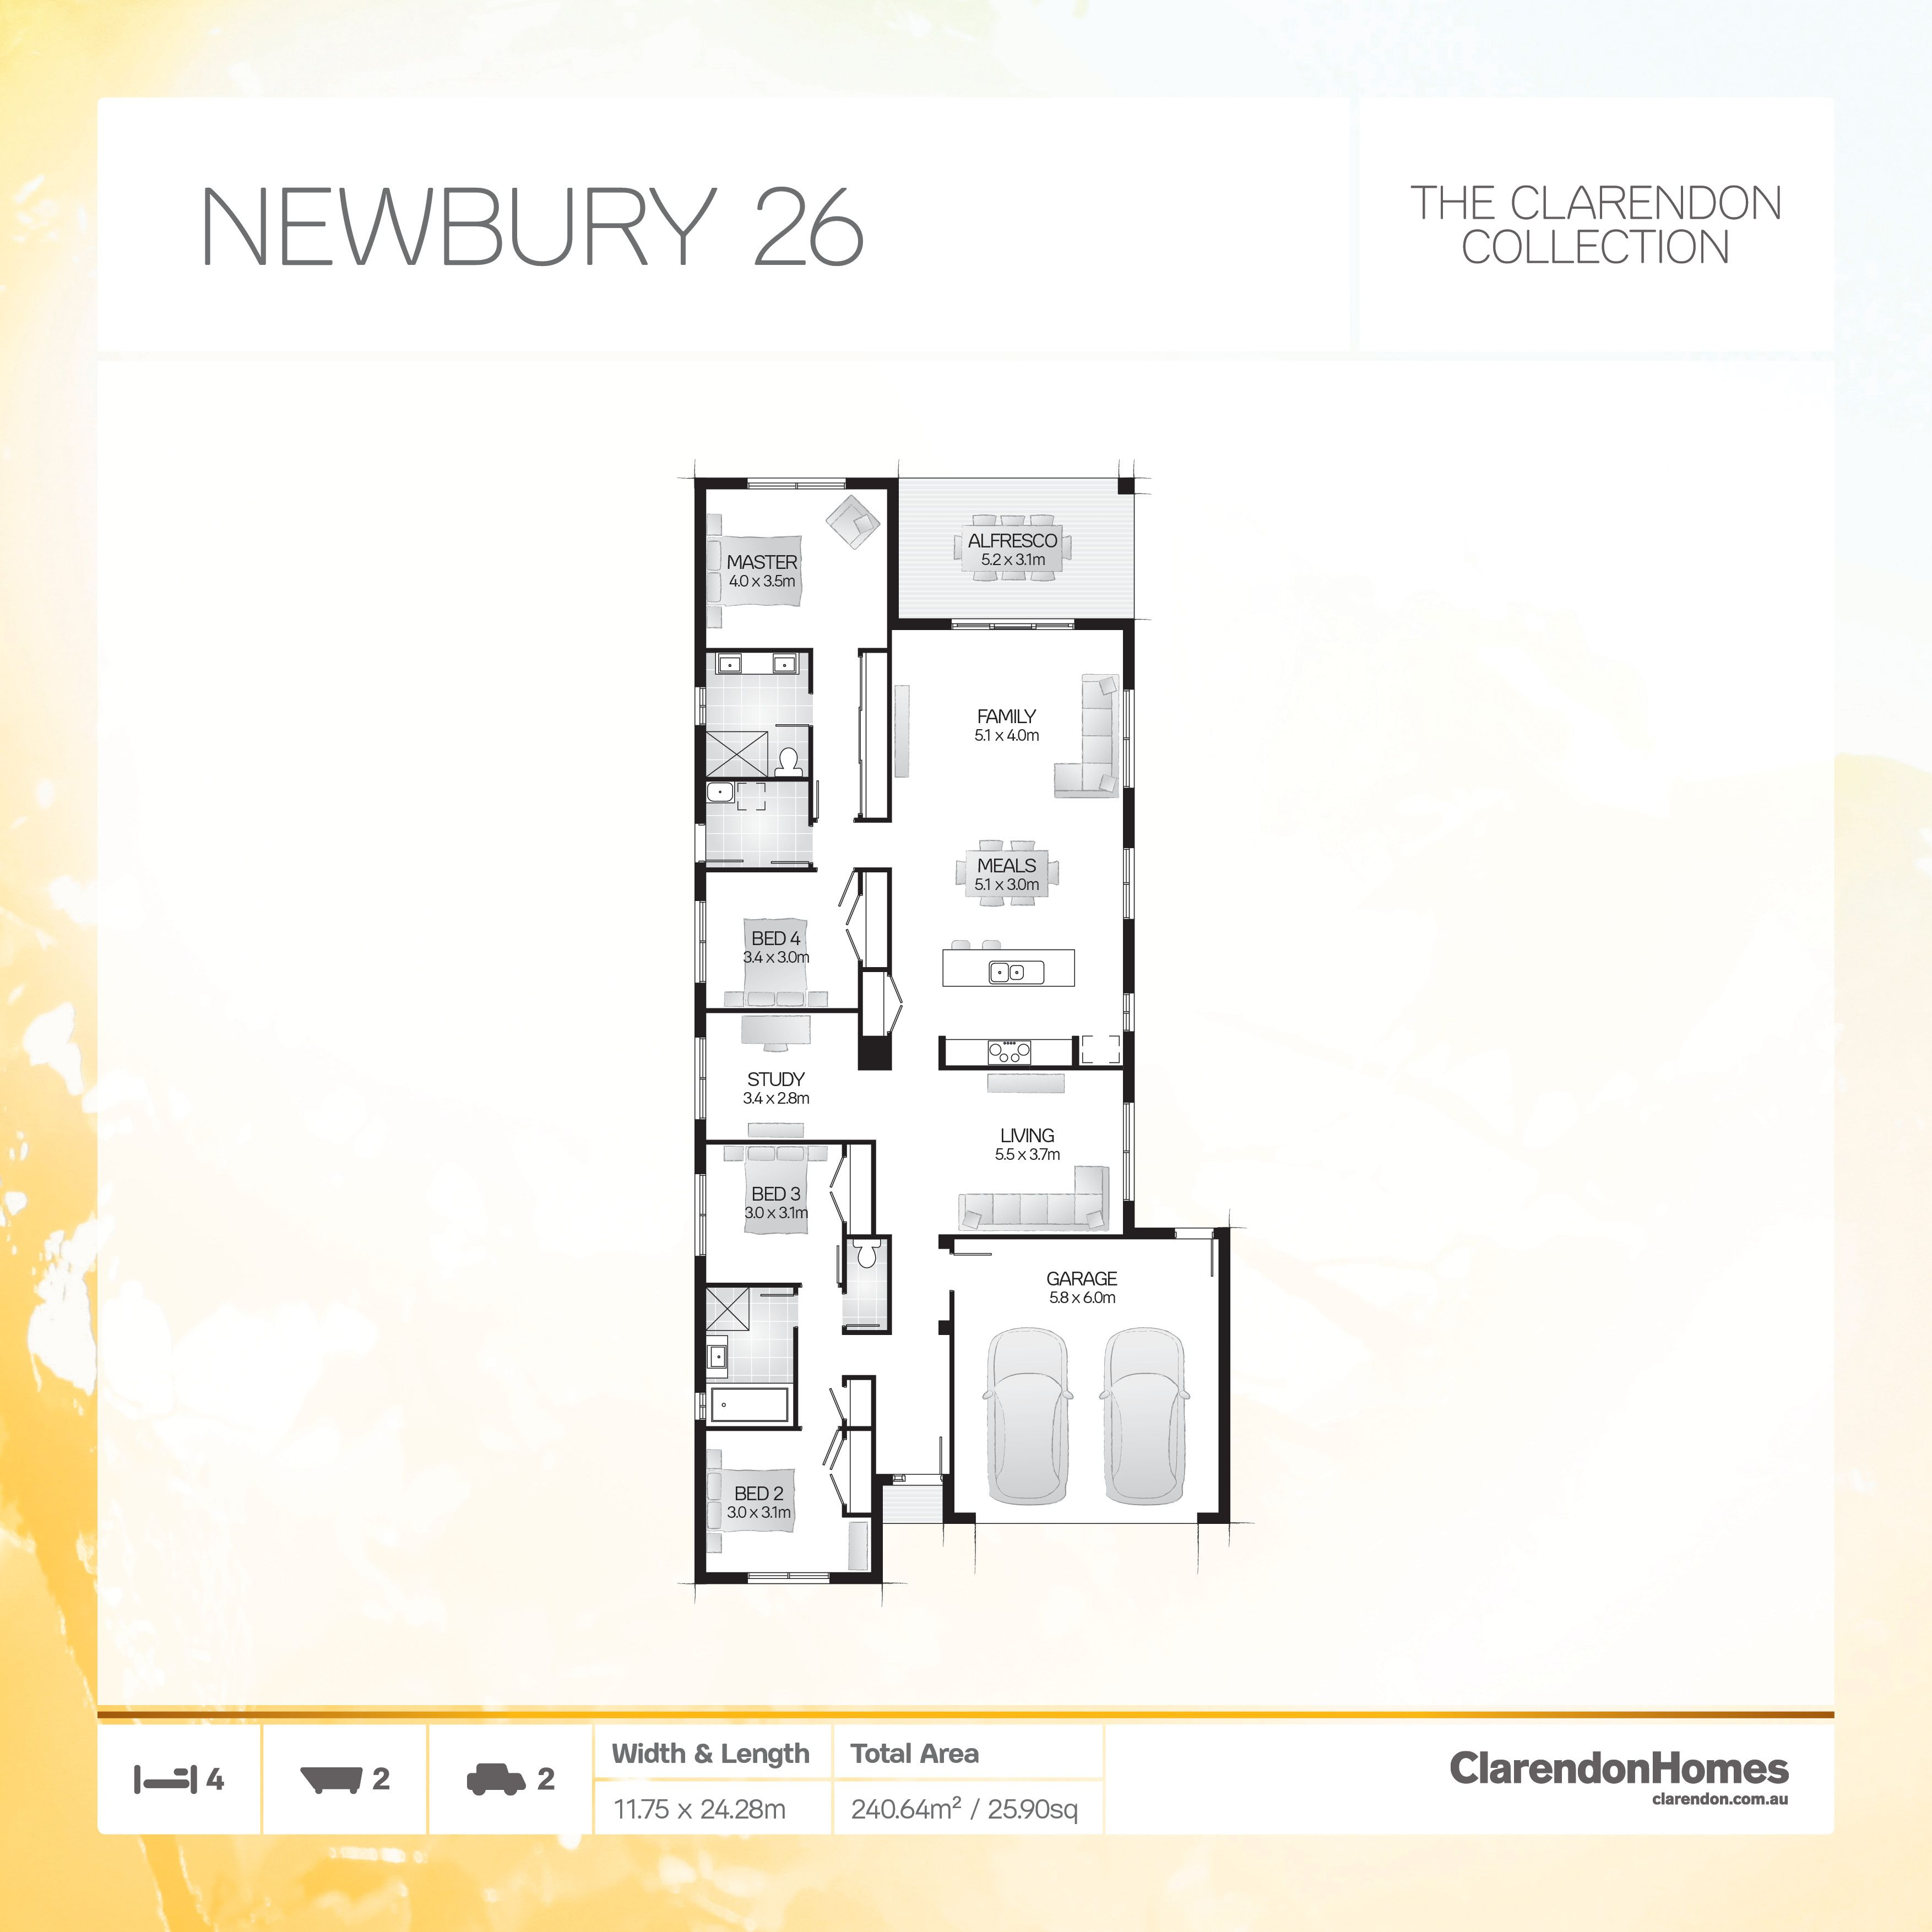 Clarendon Homes. Newbury 26. A flowing design of unparalleled beauty ...